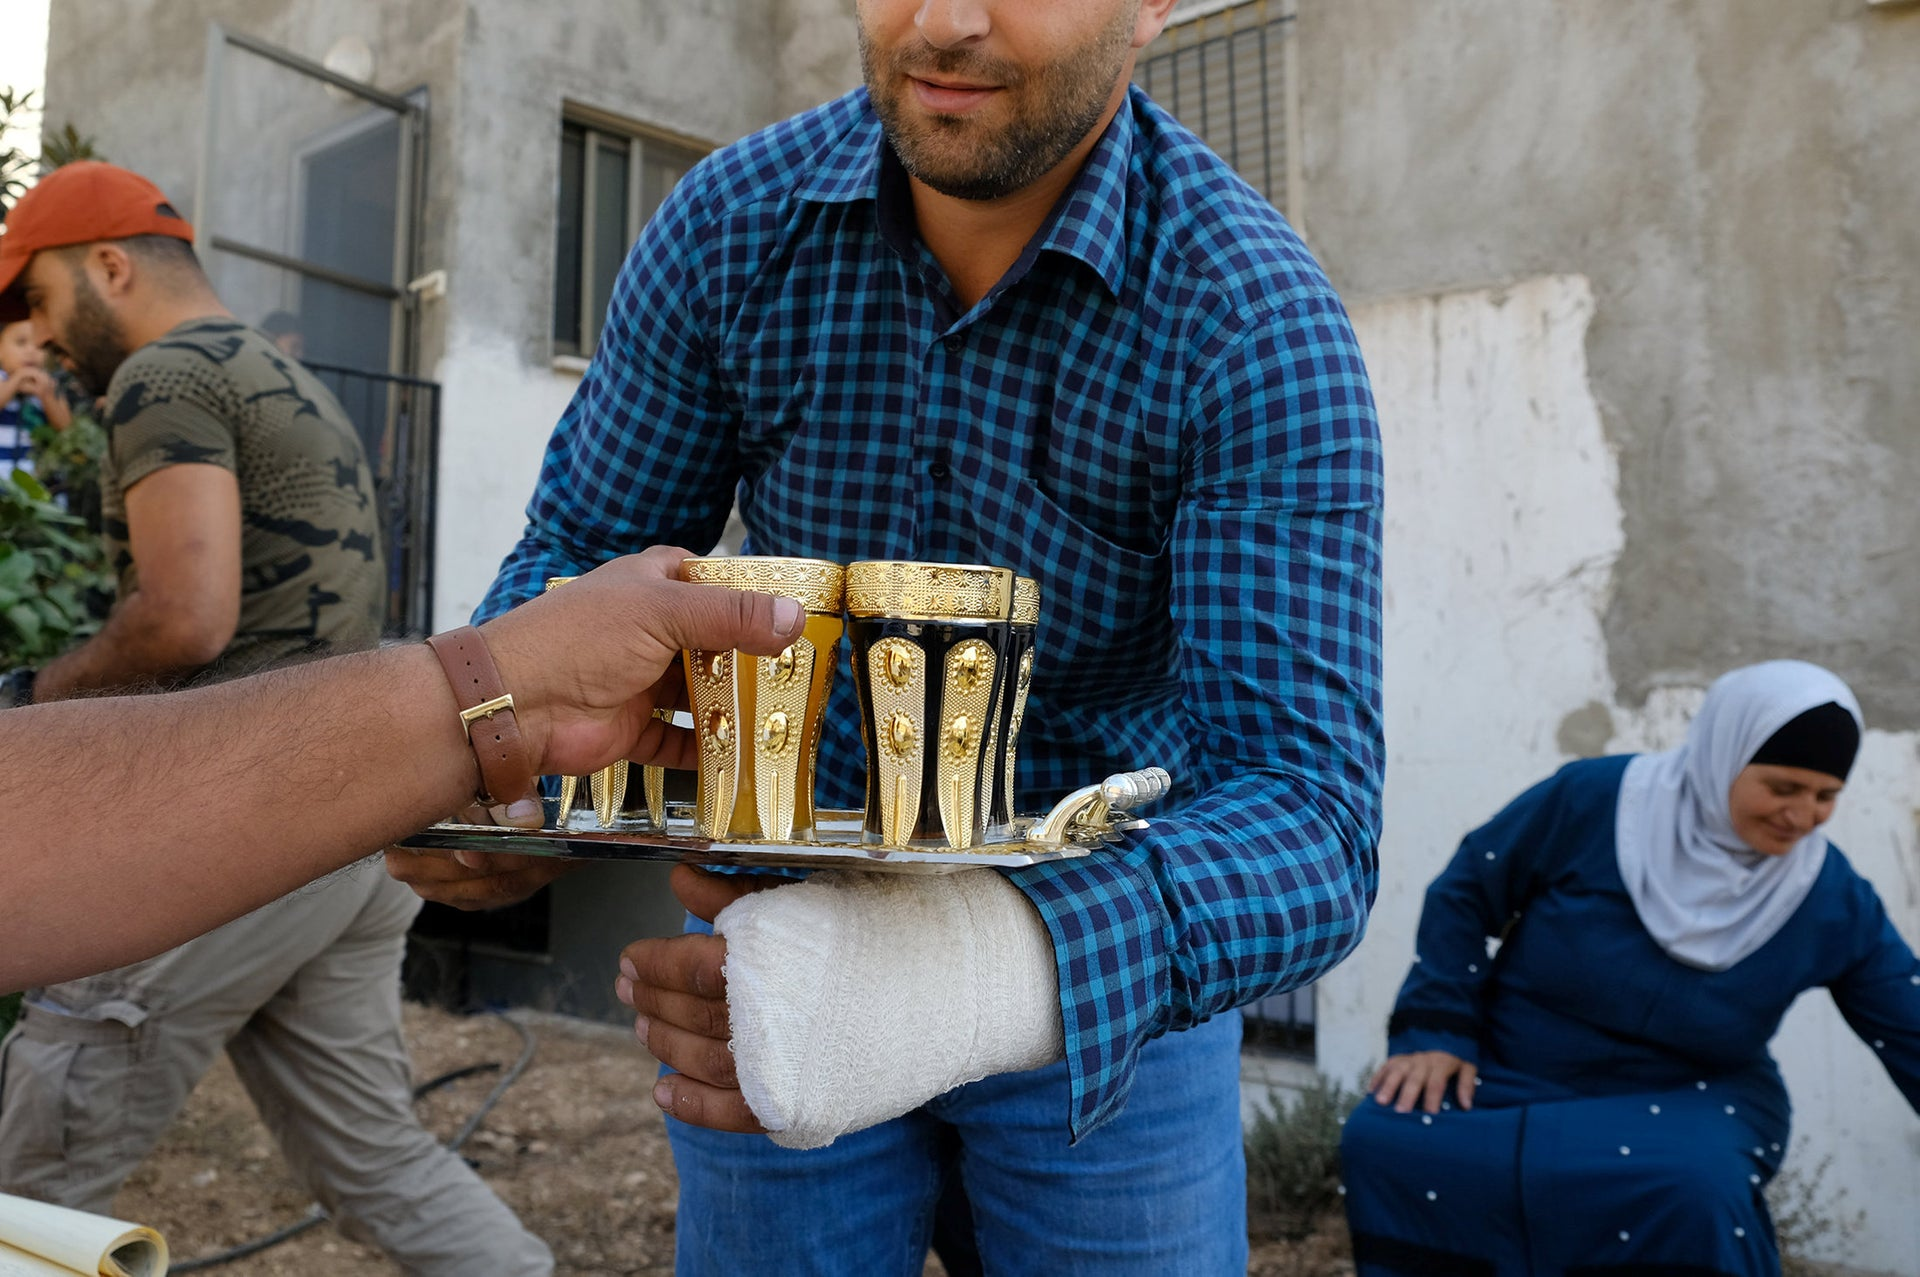 One of Imad Zaben's sons, who asked his name not be used, his hand in a cast.